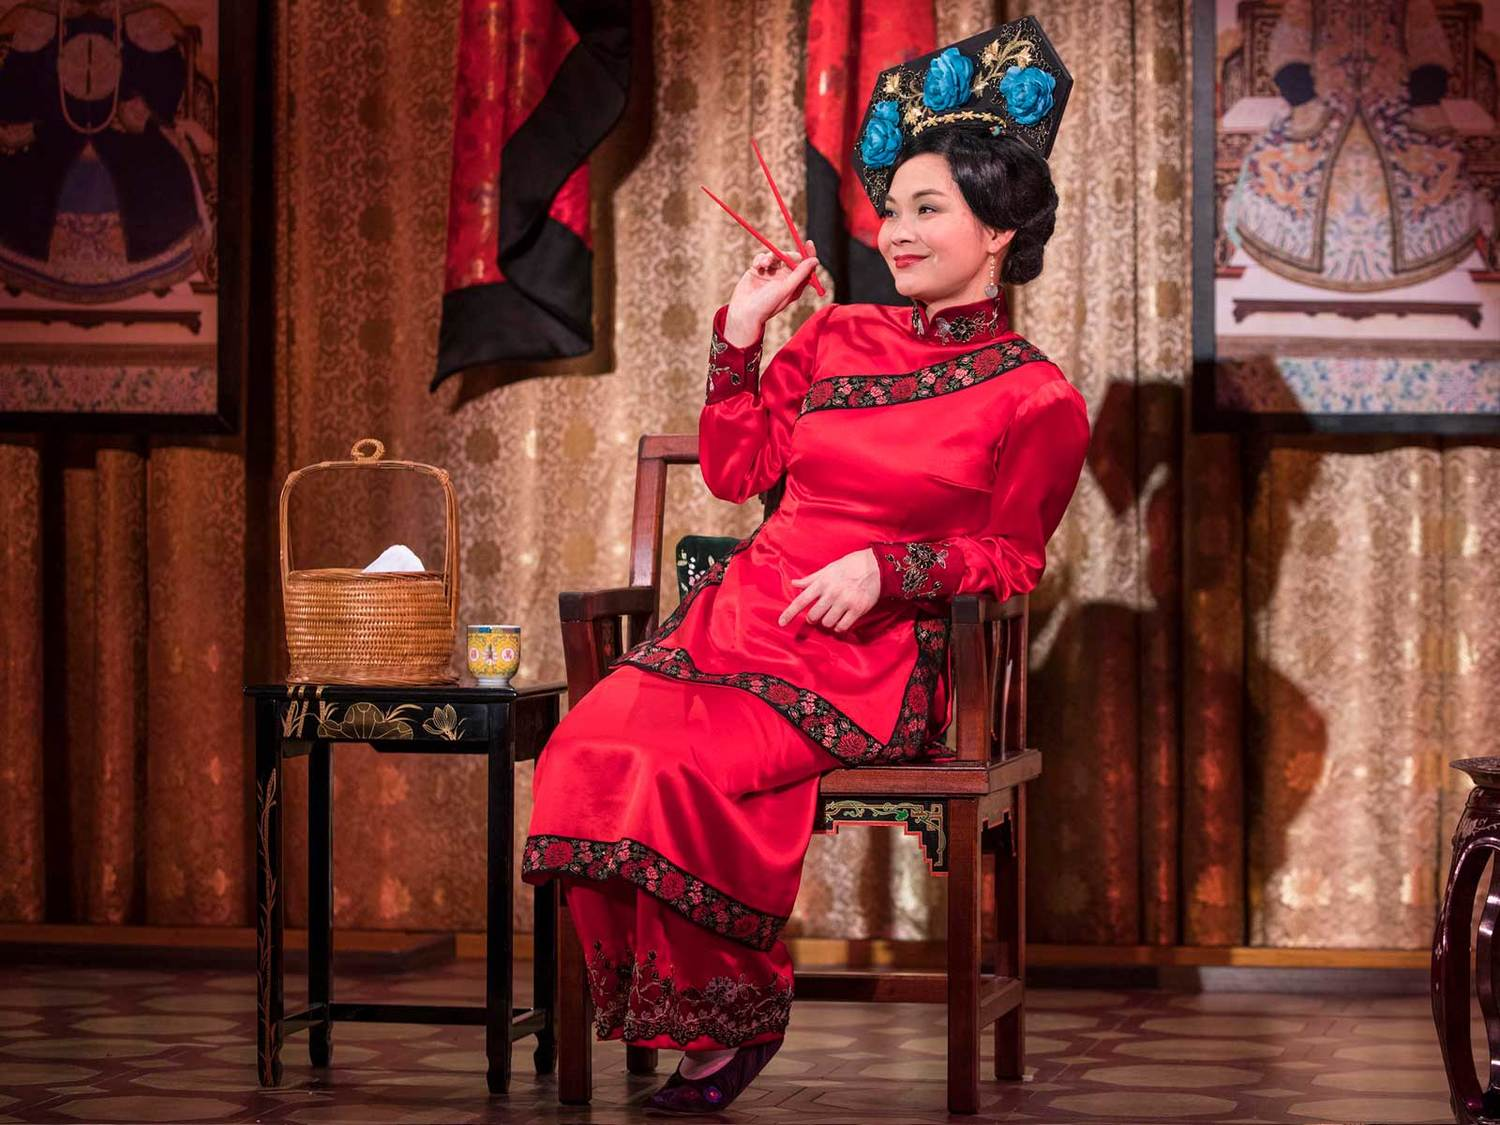 BWW Review: Spellbinding CHINESE LADY Gives Voice to Lost History at The Milwaukee Rep